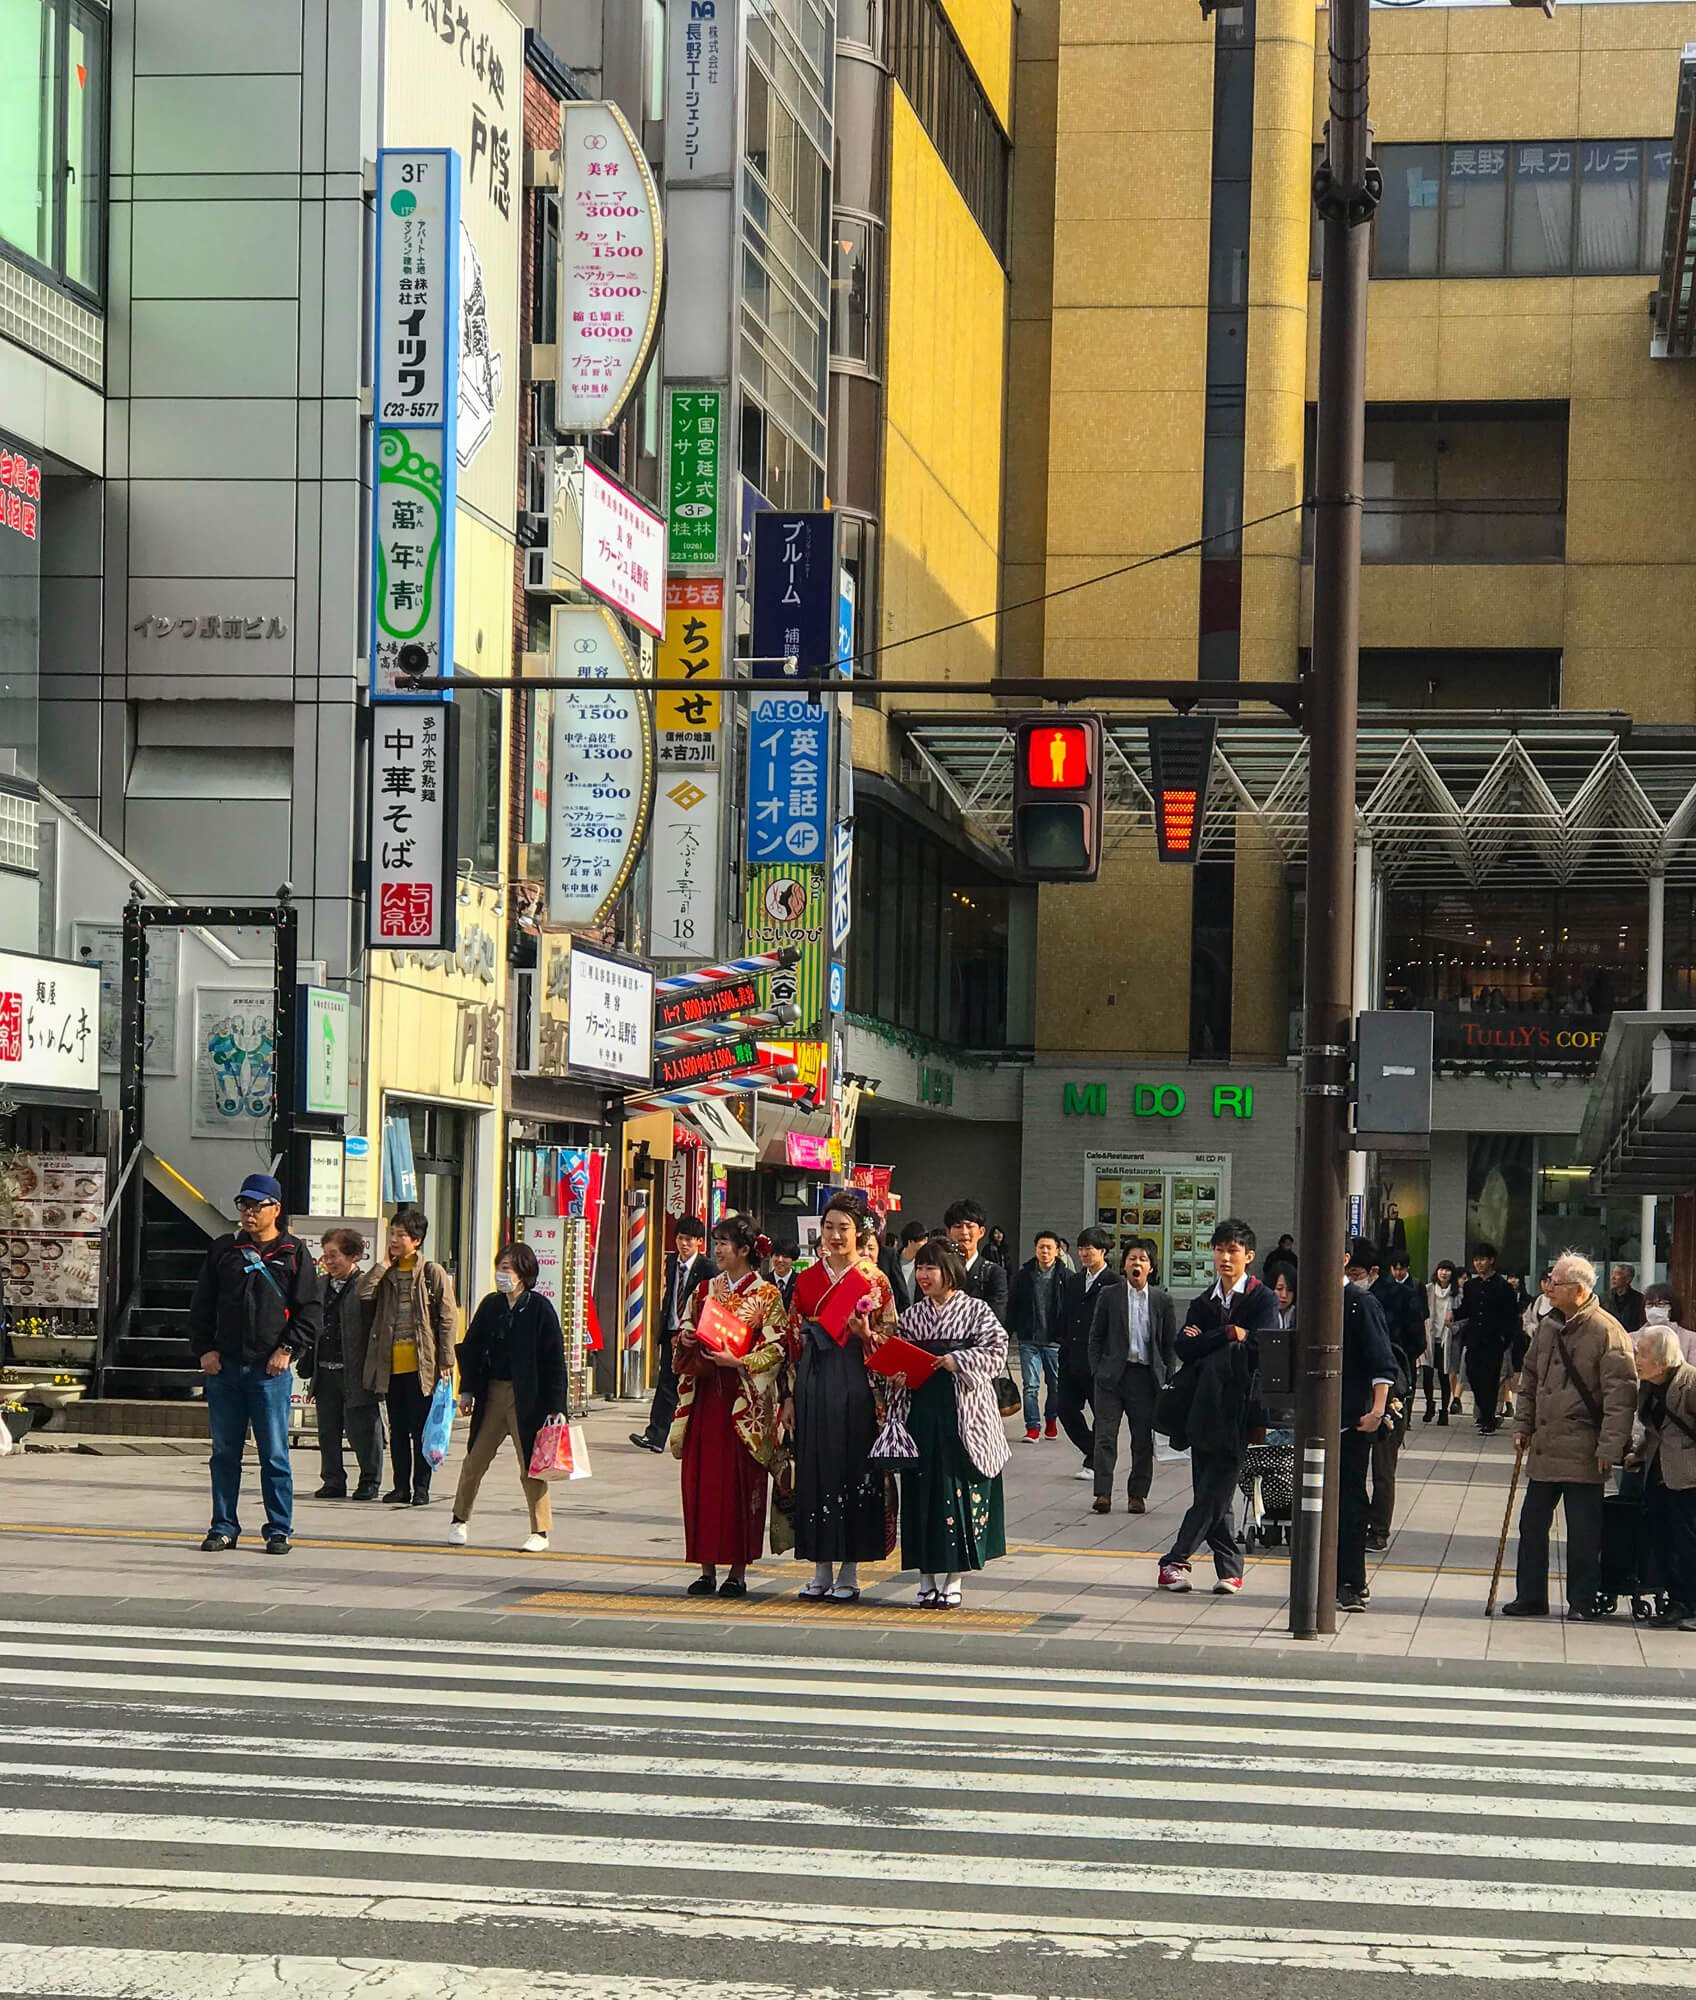 THE BUSTLING NAGANO - TRADITION MIXED WITH MODERN DAY. THE GUY IN THE BACK IS VERY TIRED!